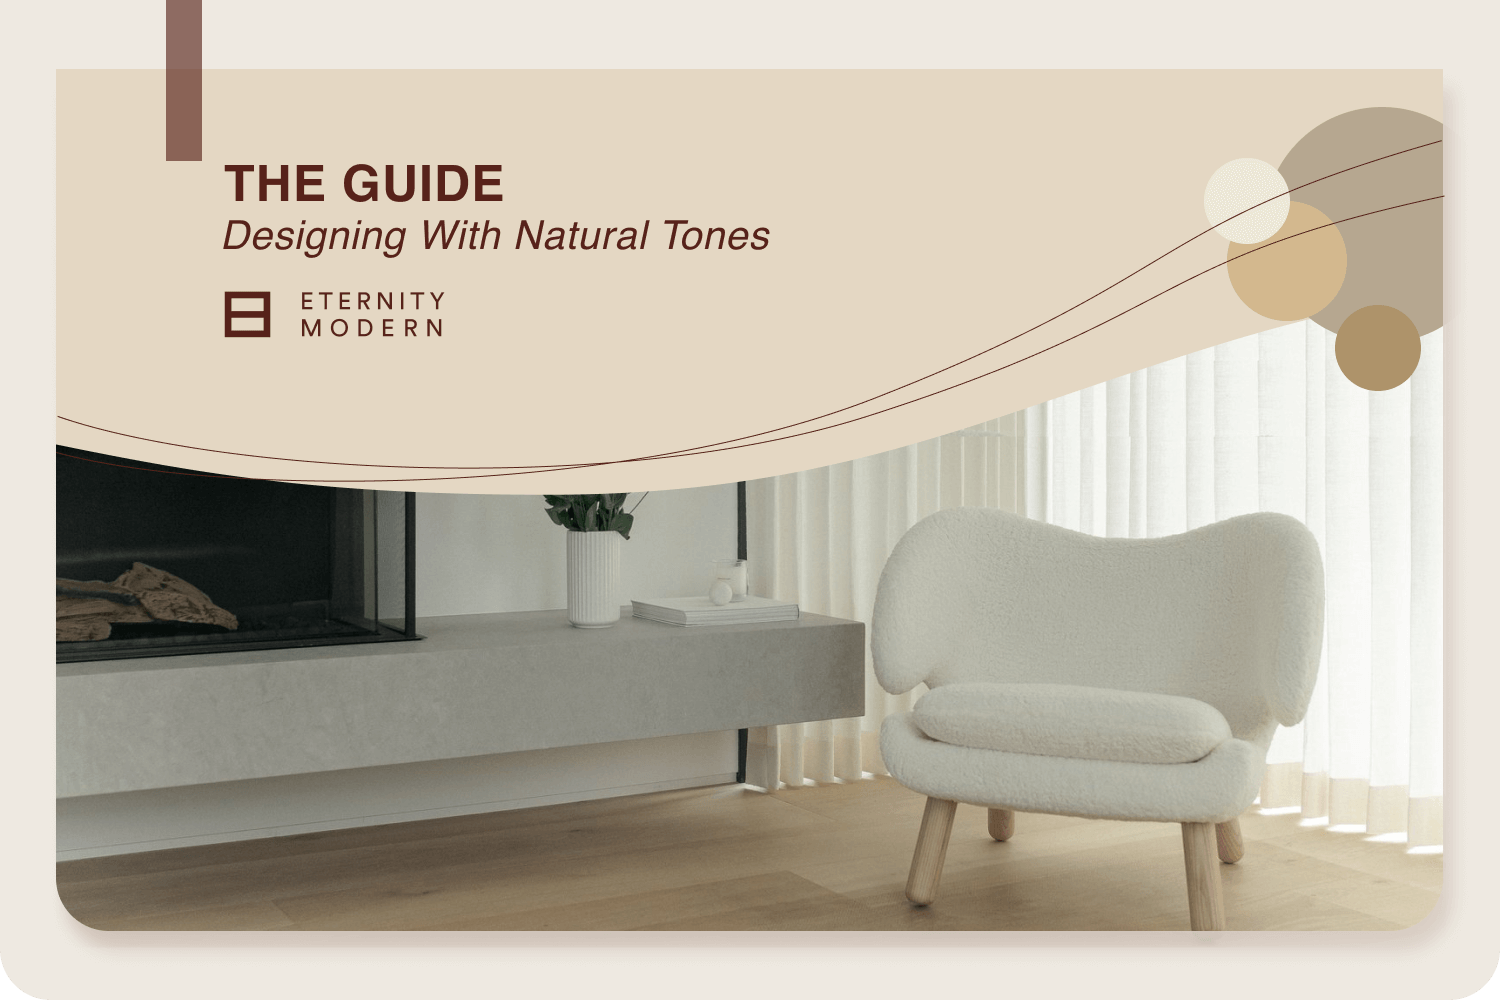 The Guide Designing With Natural Tones